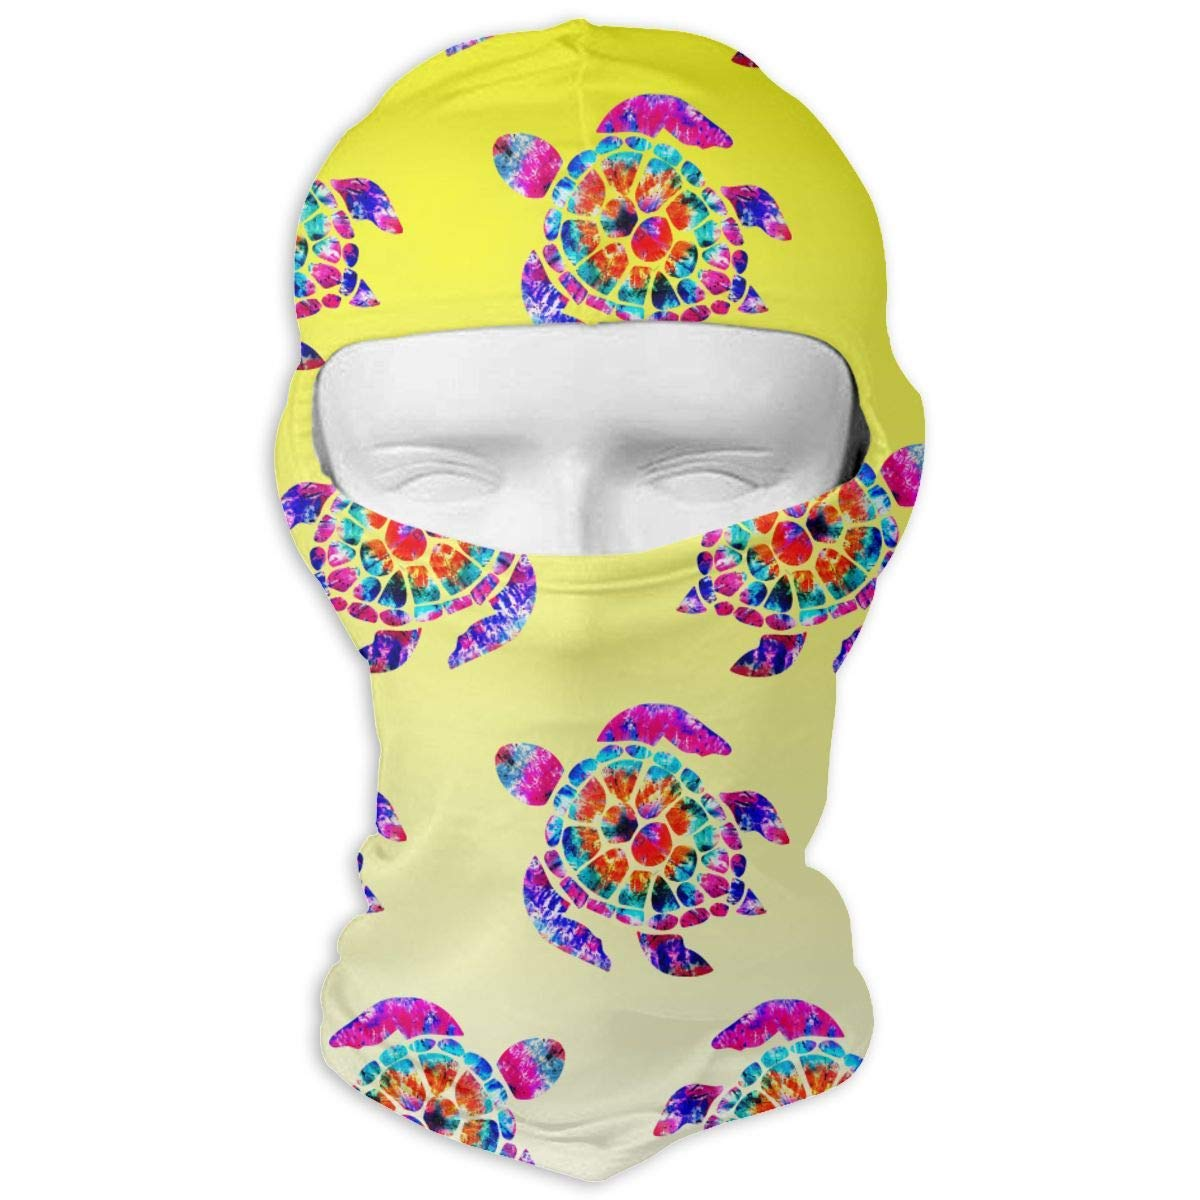 Vidmkeo Colorful Tie Dye Turtle Balaclava Face Mask Hood for Skiing Camping Running Cycling Neck Warm